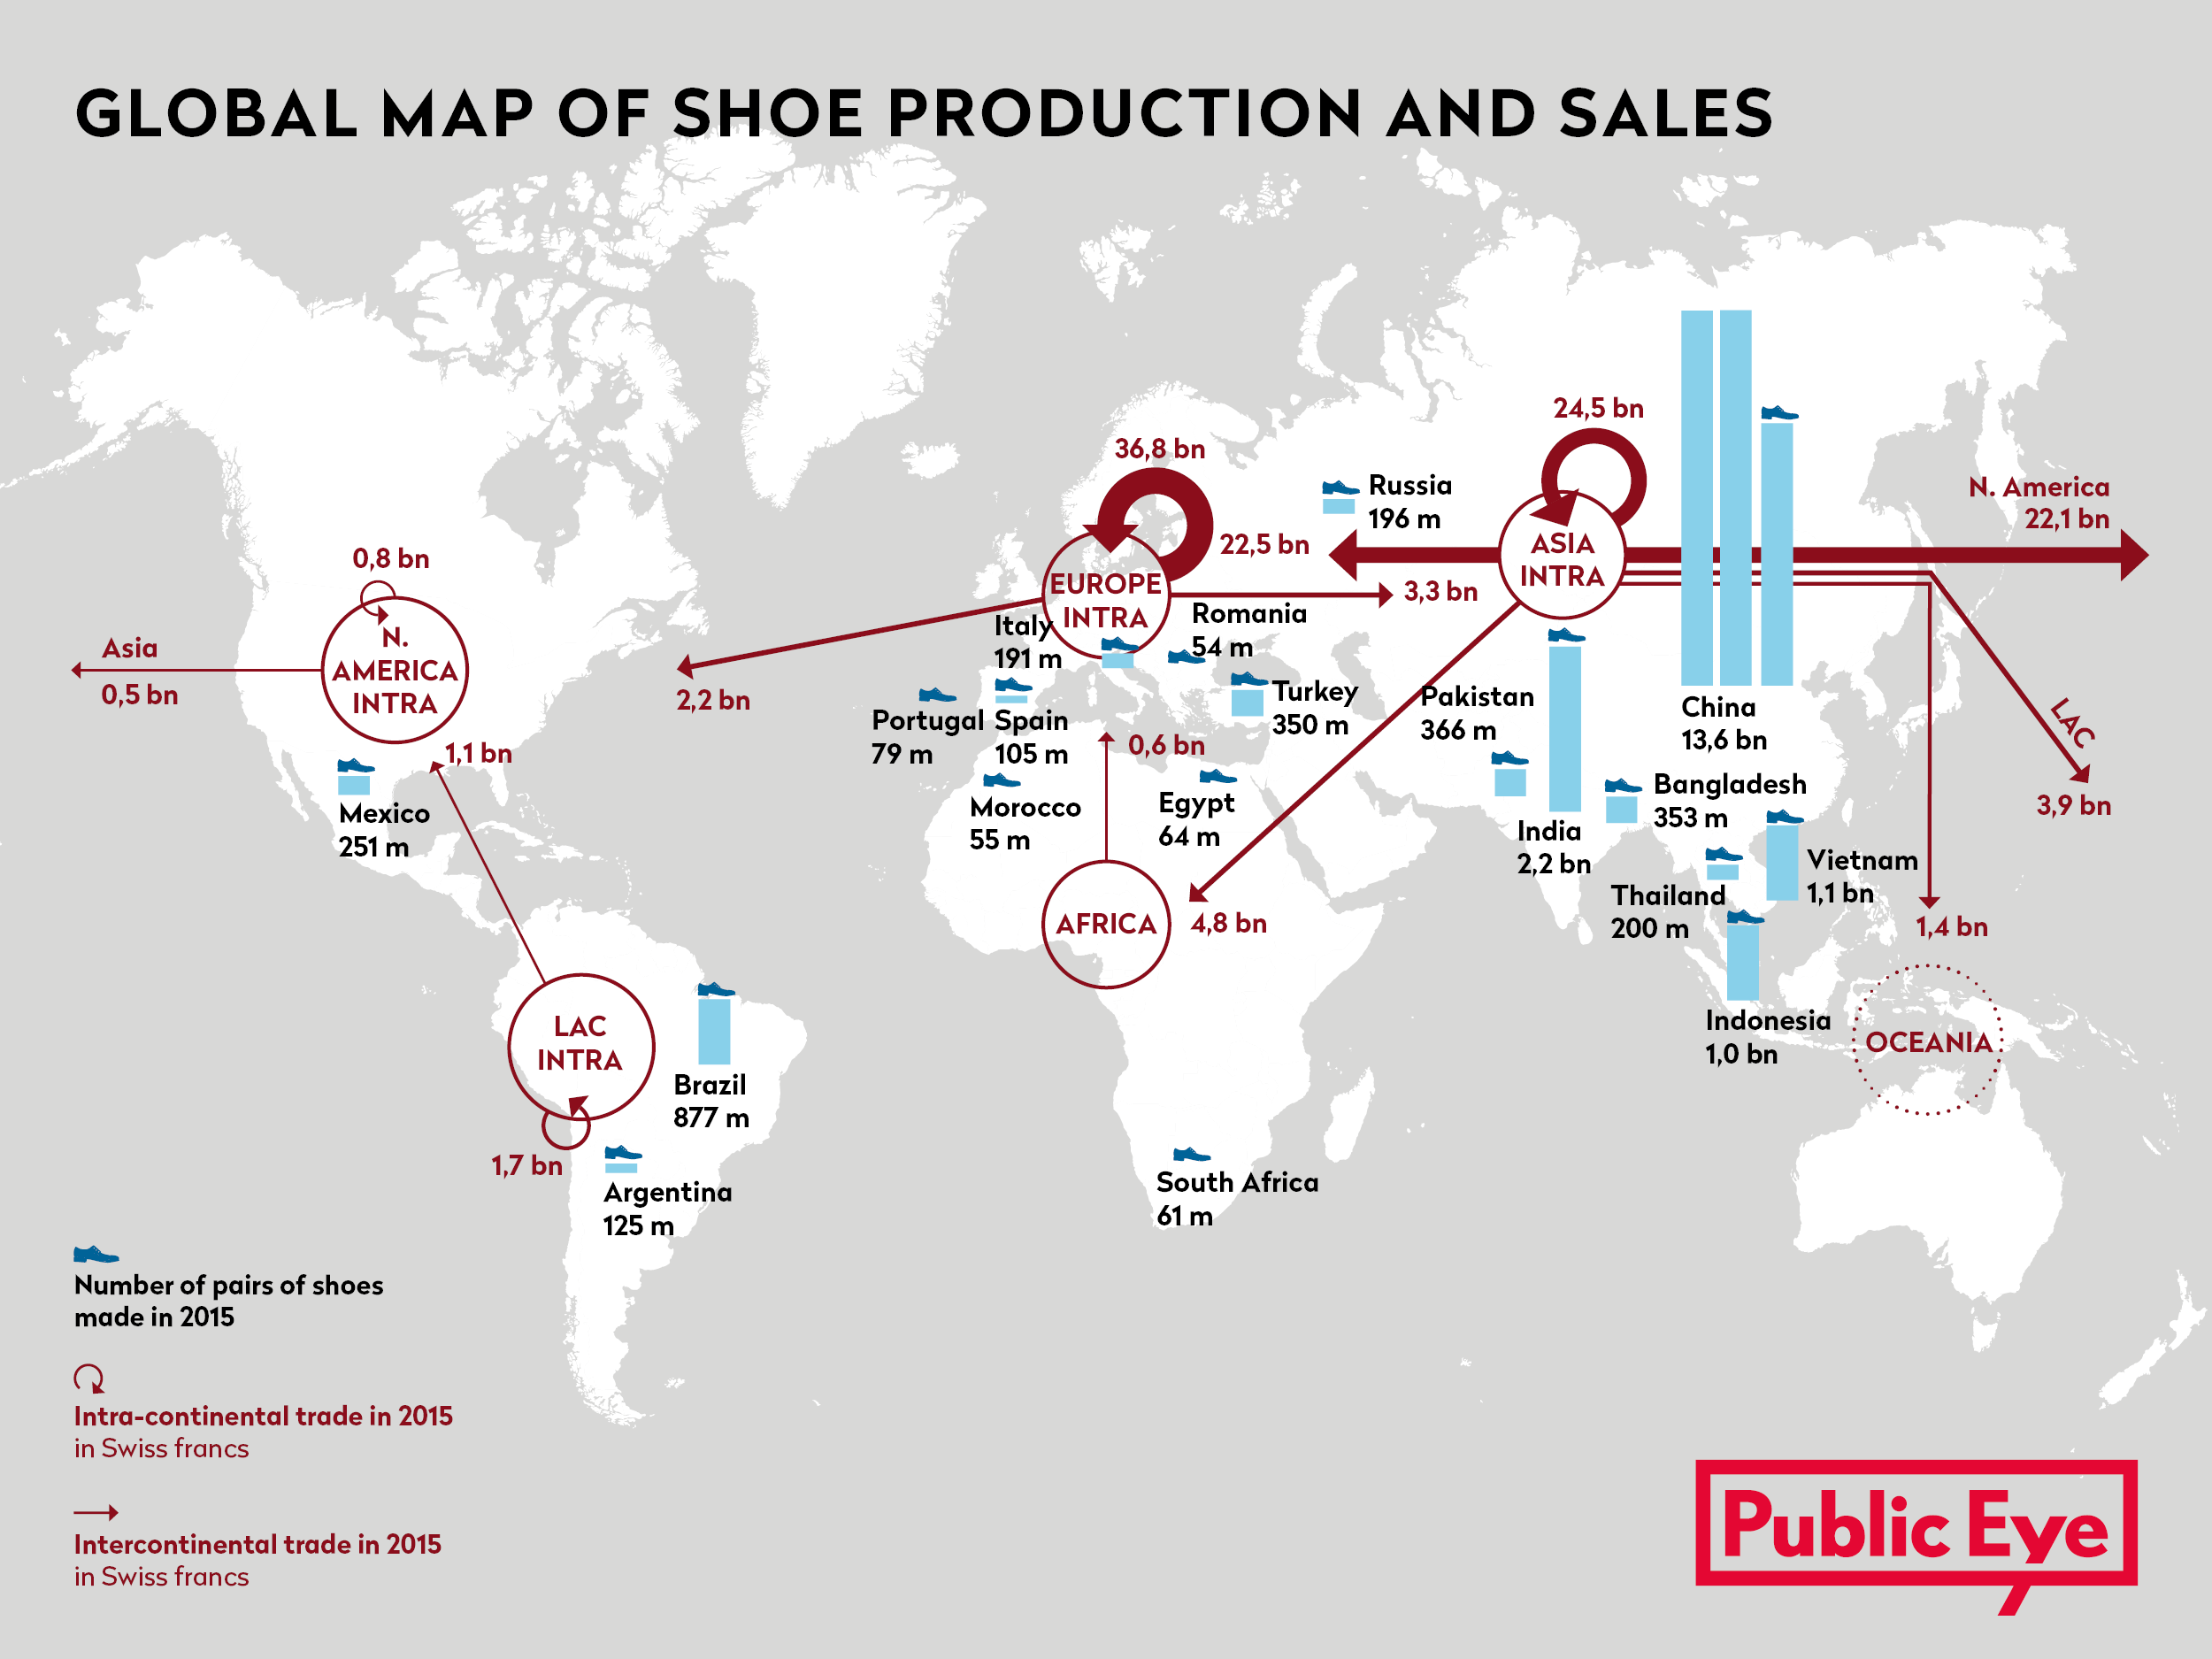 Global Map of Shoe Production and Sales @Public Eye